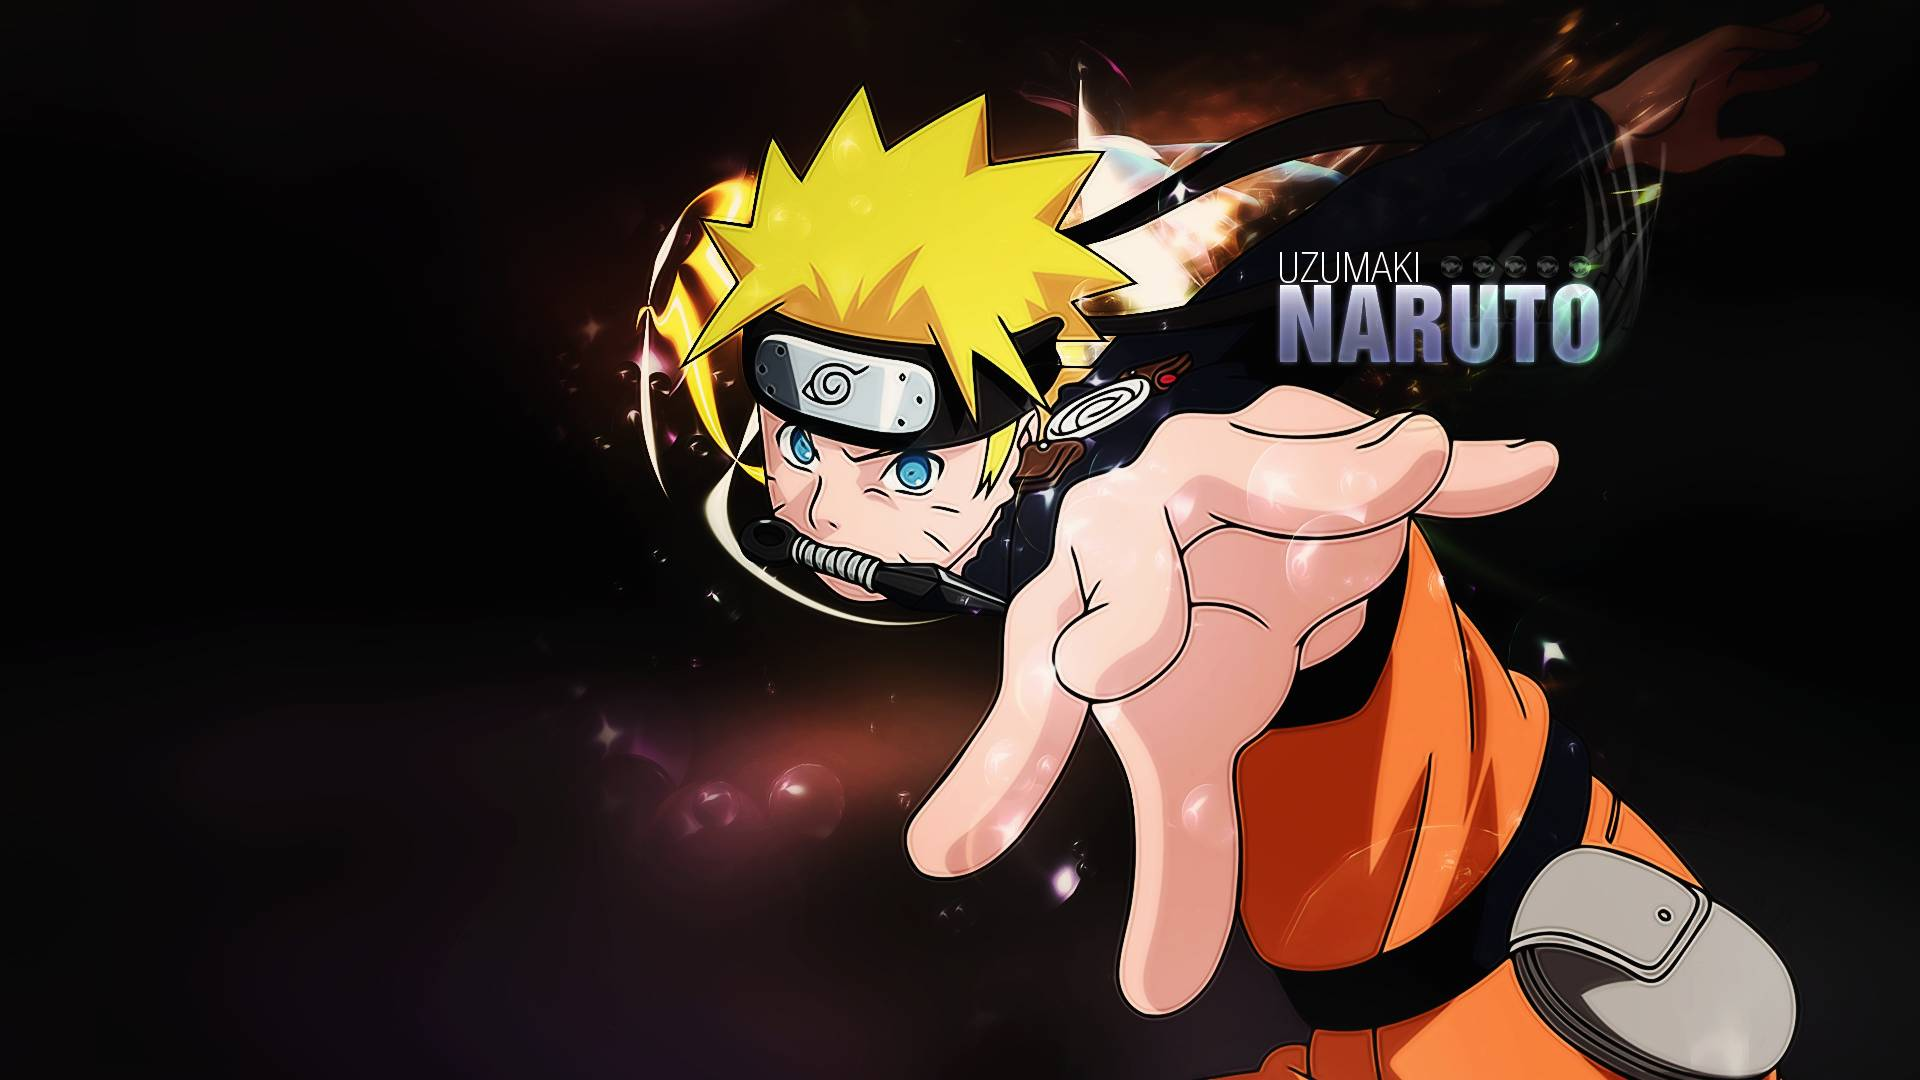 Cool Naruto Wallpapers HD - Wallpaper Cave